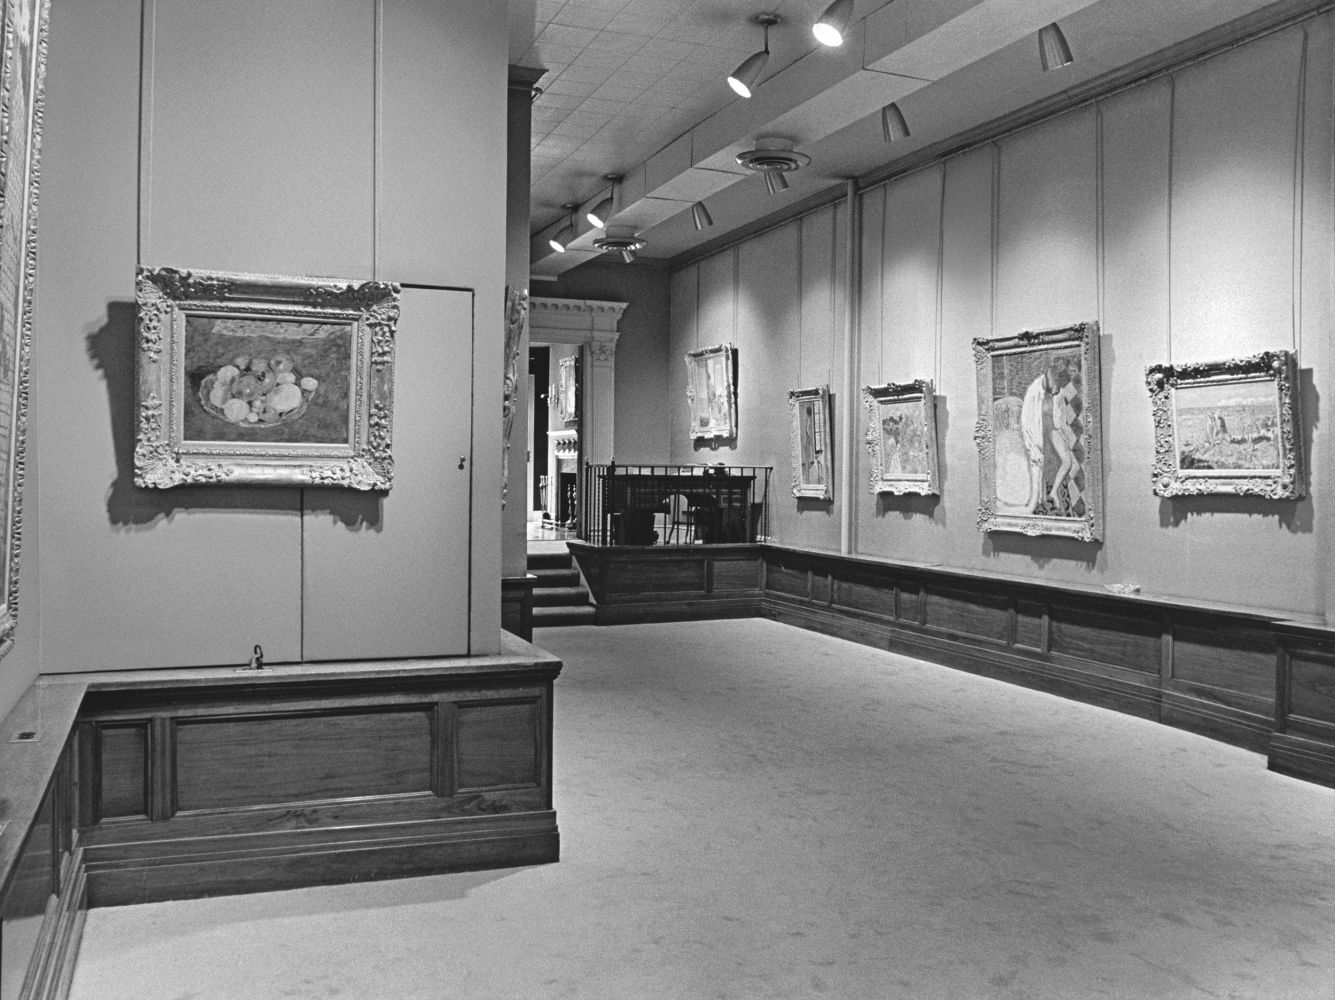 Installation view of Pierre Bonnard, on view at Acquavella Galleries from November 9 - December 11, 1965.